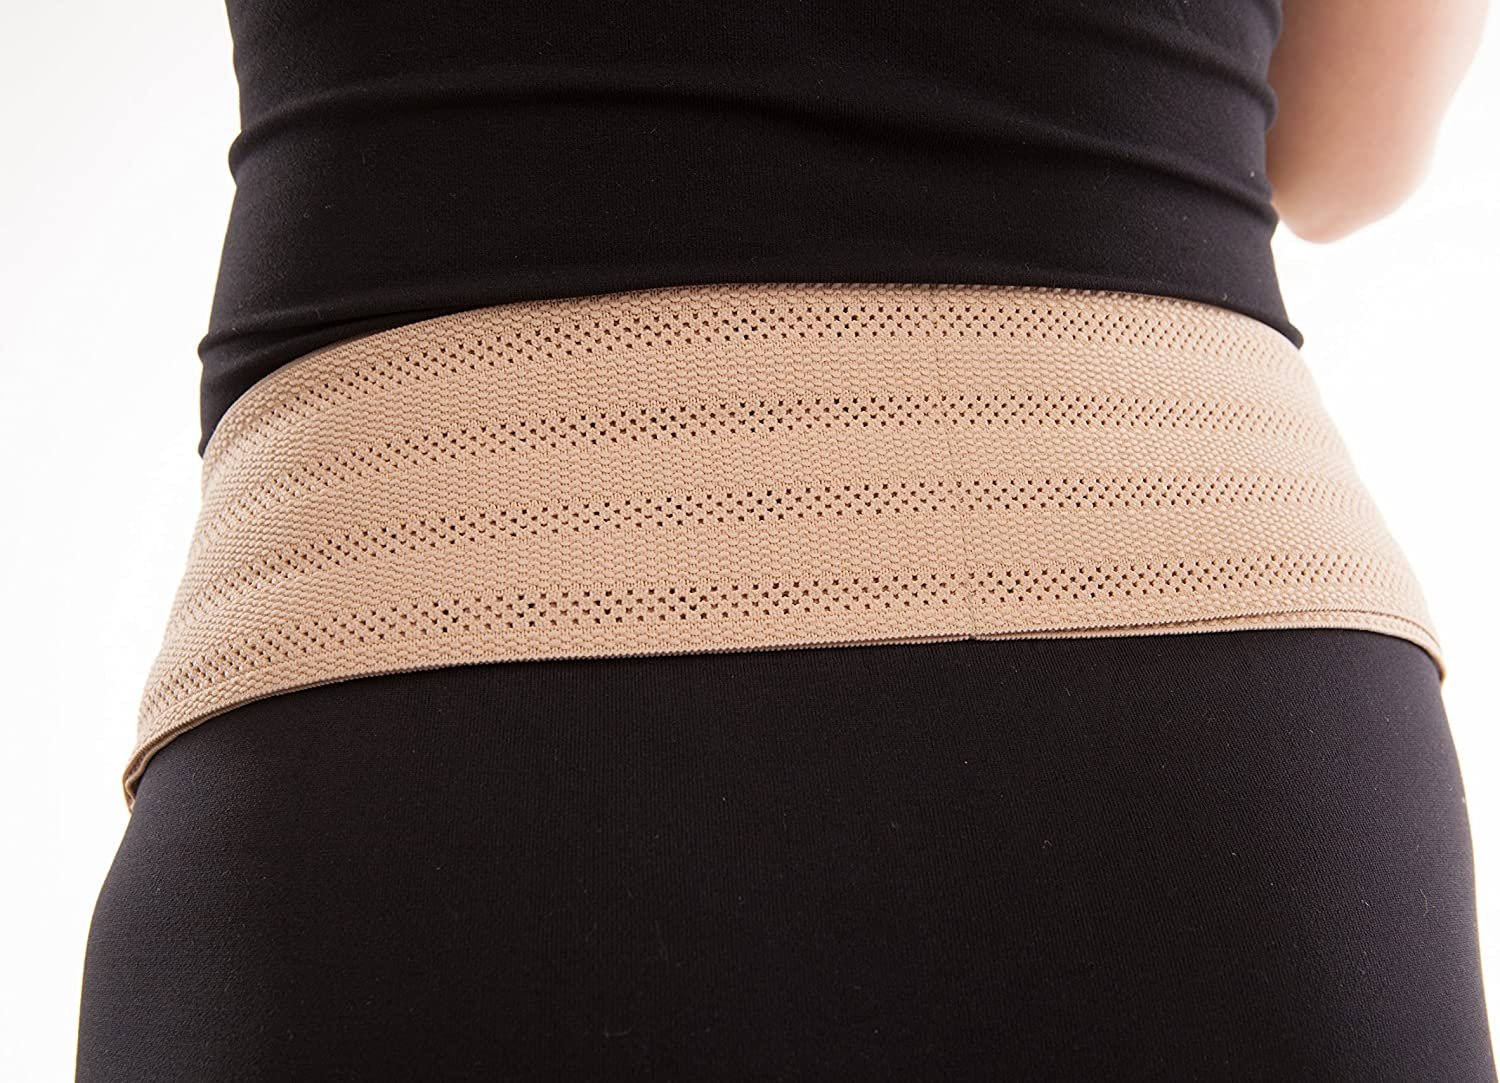 2 in 1 Maternity Support and Post Pregnancy Hip Wrap Back Support GABRIALLA Maternity Belt Abdominal Binder MS-14 Belly Band